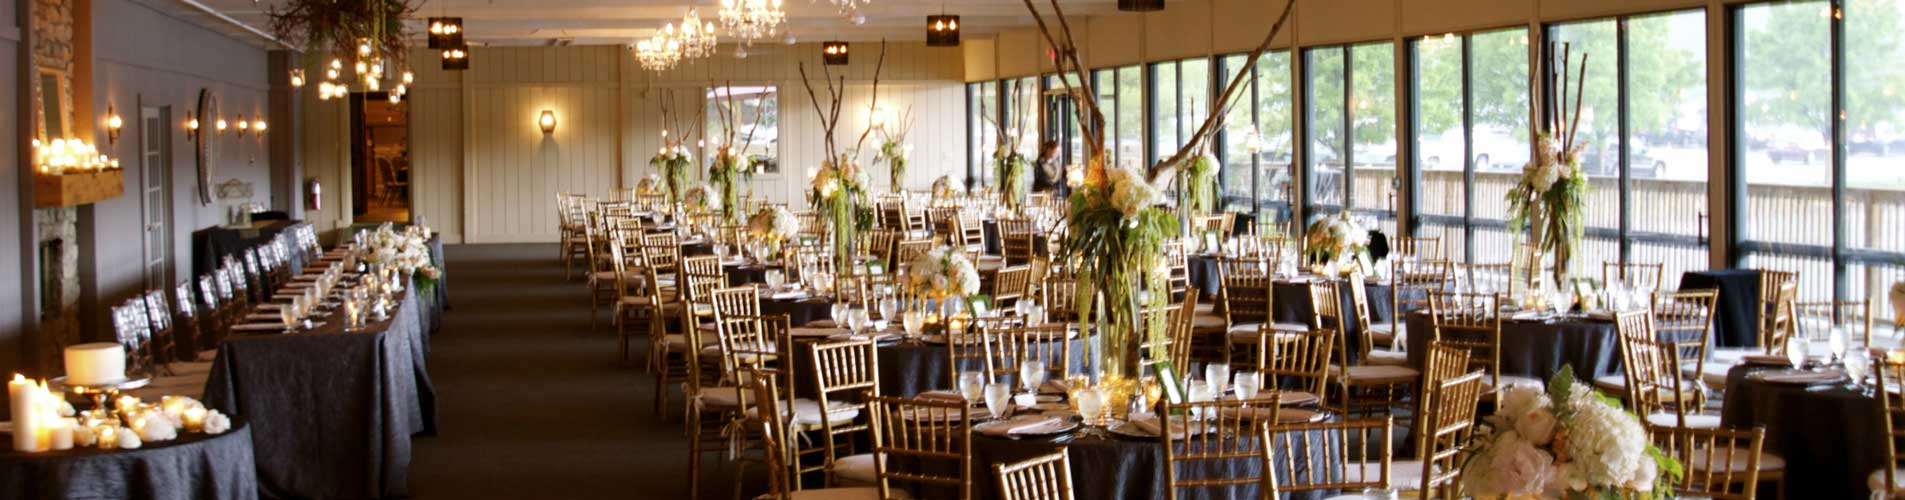 Bohemian and natural themed wedding reception at the lakefront venue of The Lodge at The Willows